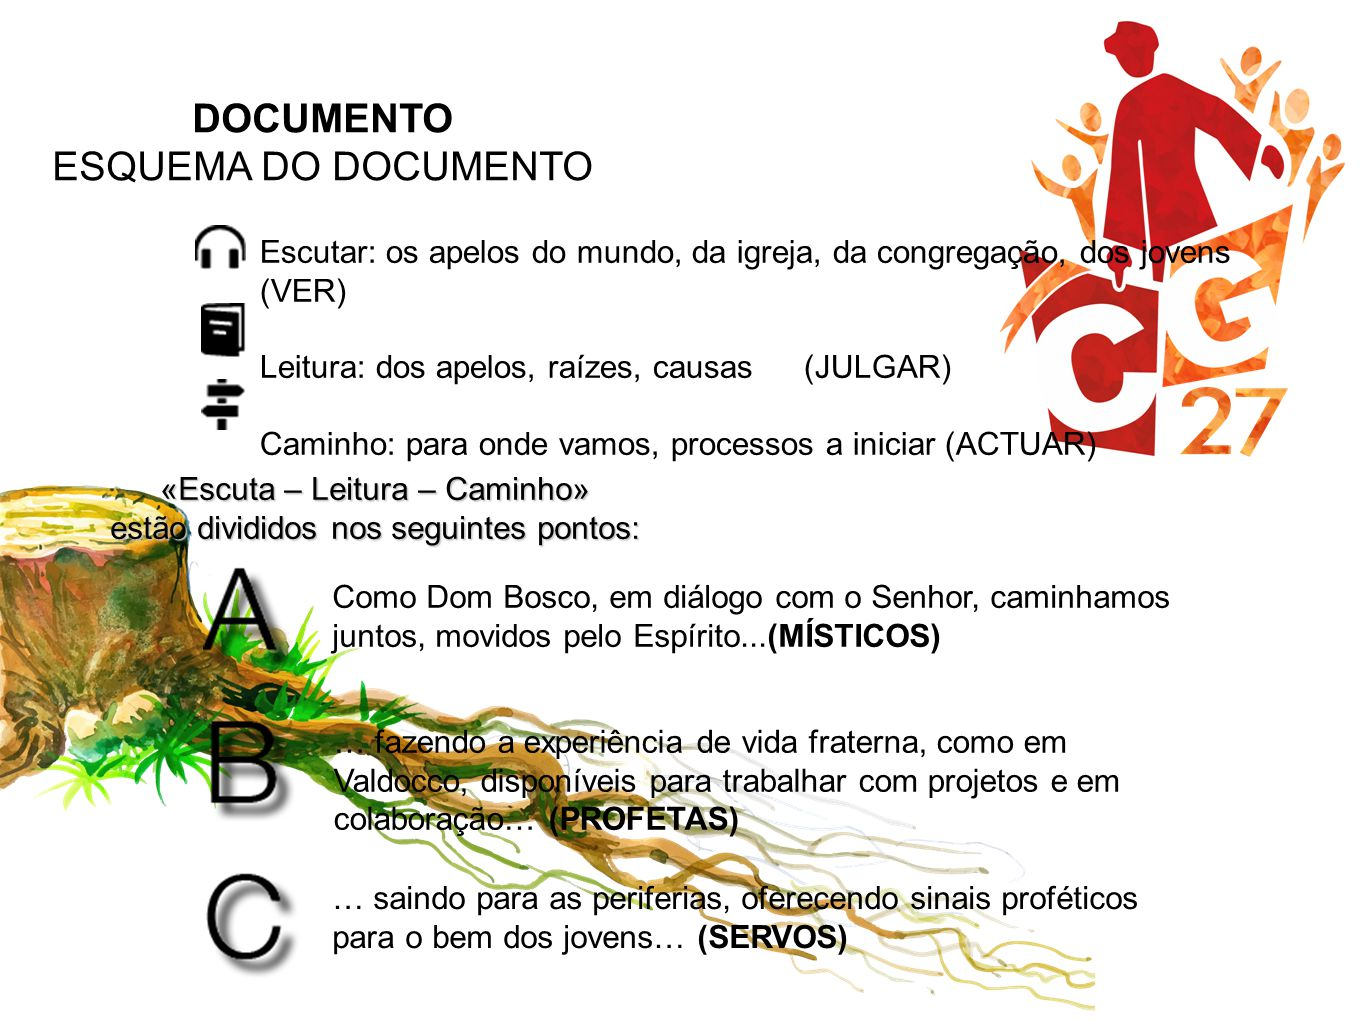 DOCUMENTO ESQUEMA DO DOCUMENTO